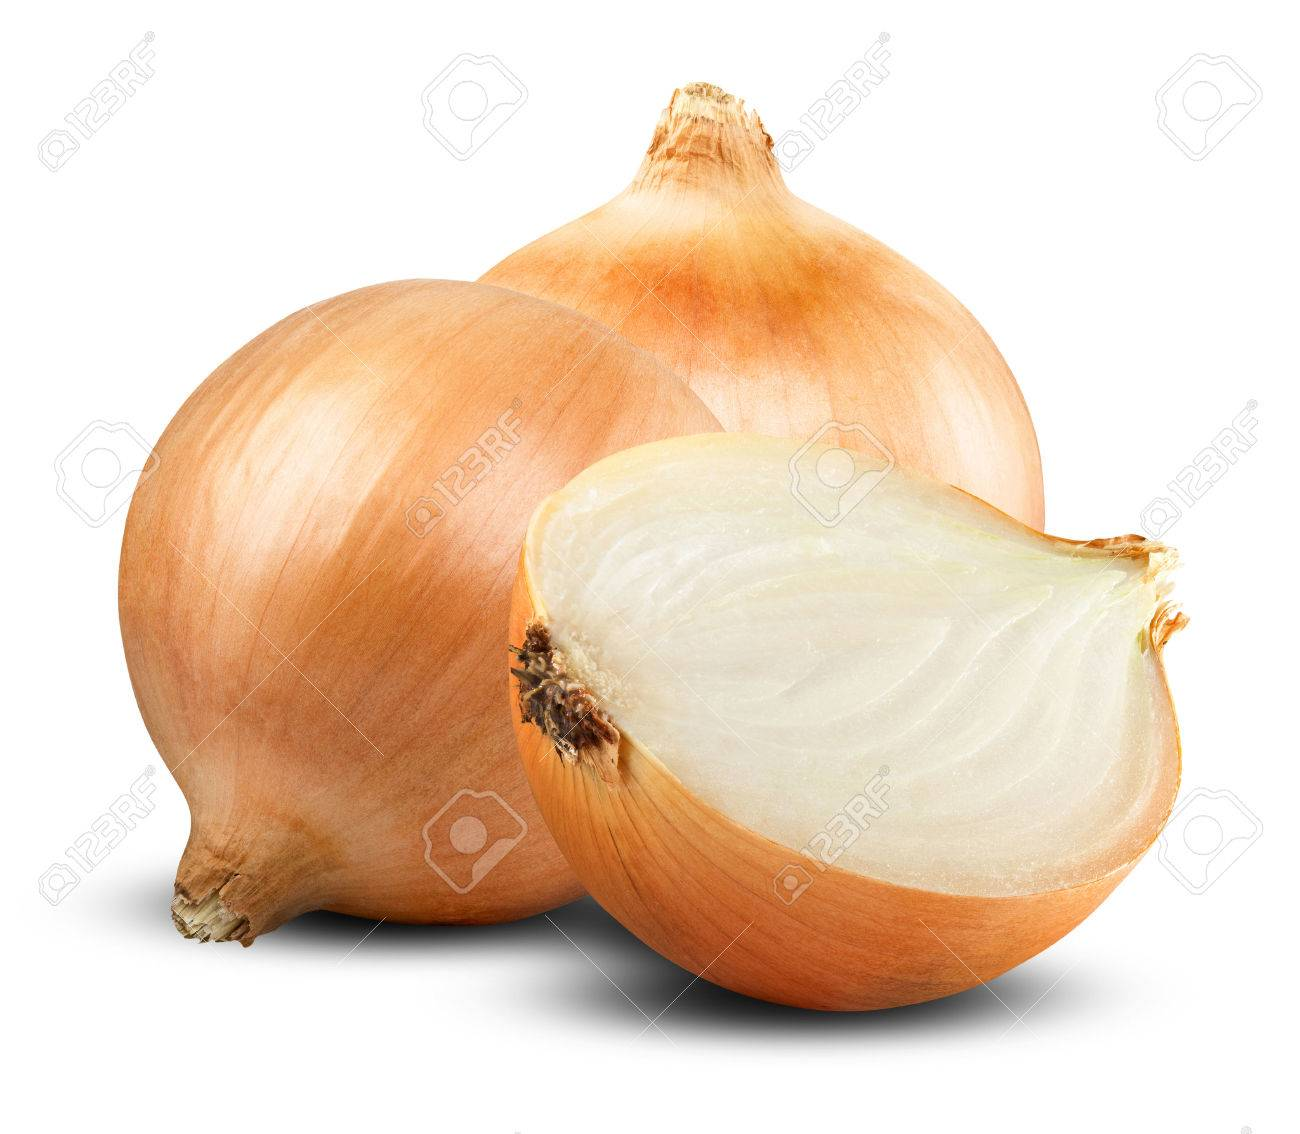 Fresh onion bulbs isolated on white background - 31590966